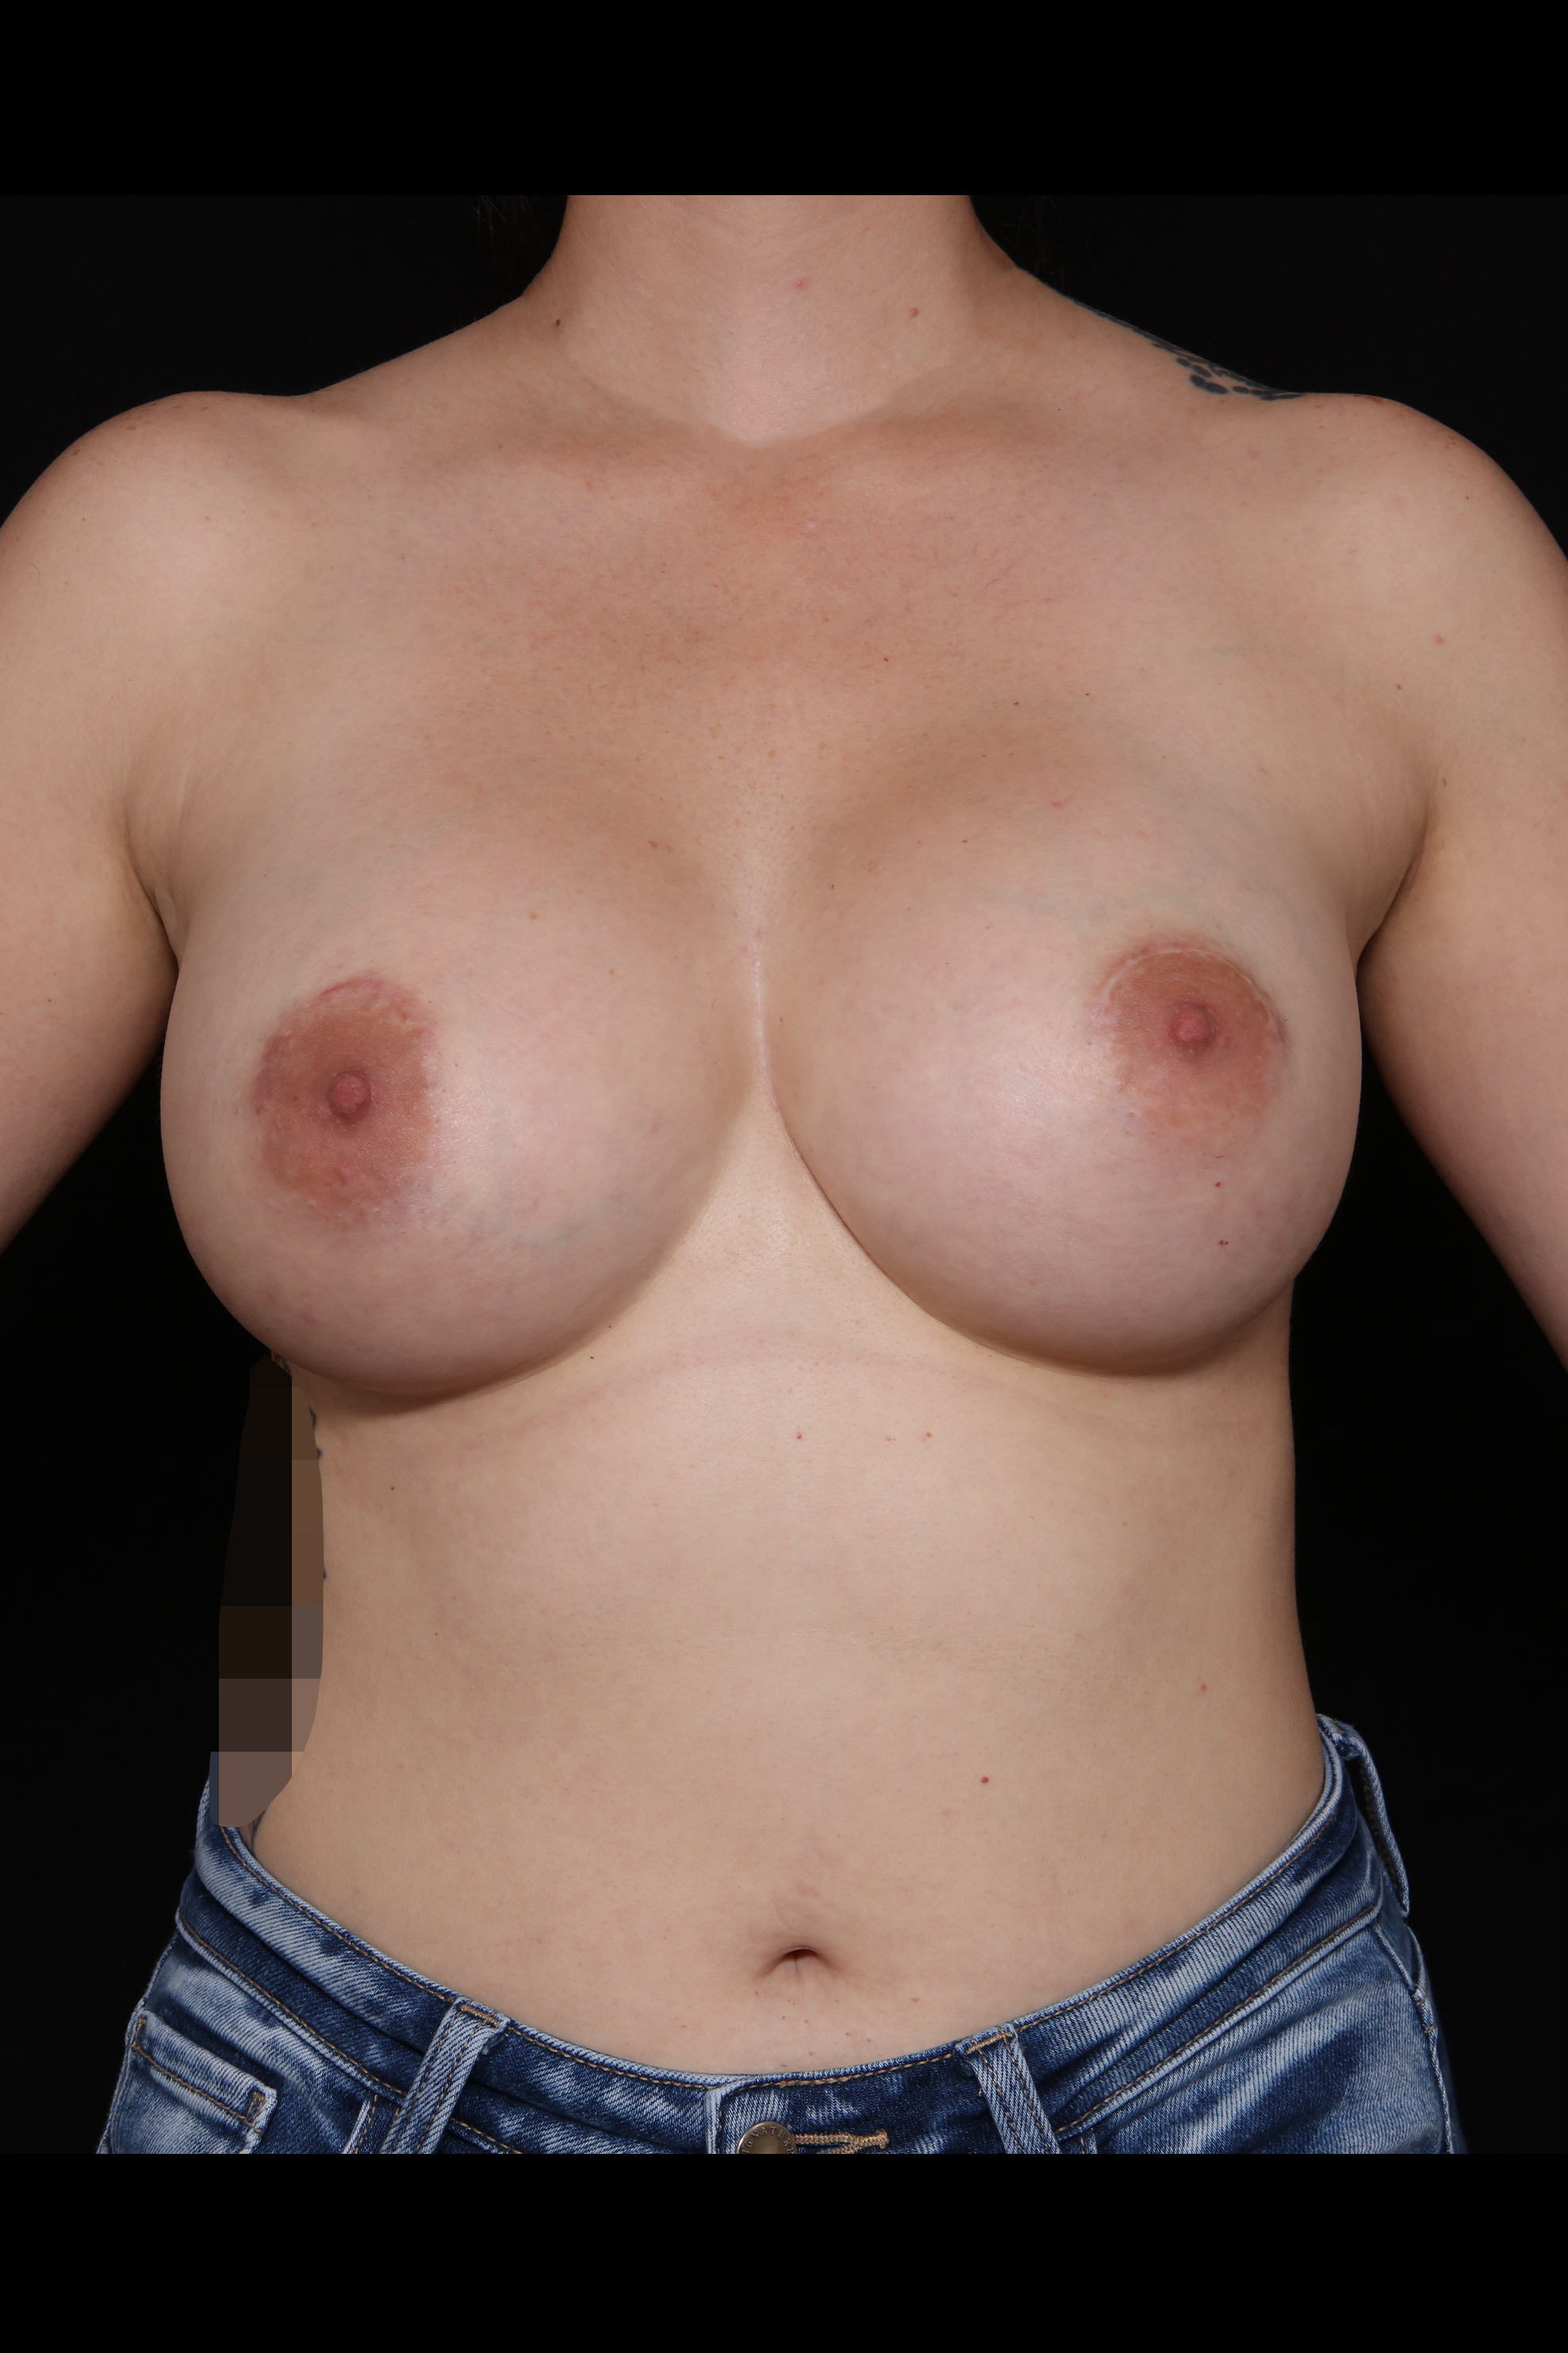 After Breast Augmentation - 485cc moderate silicone implants with a crescent lift